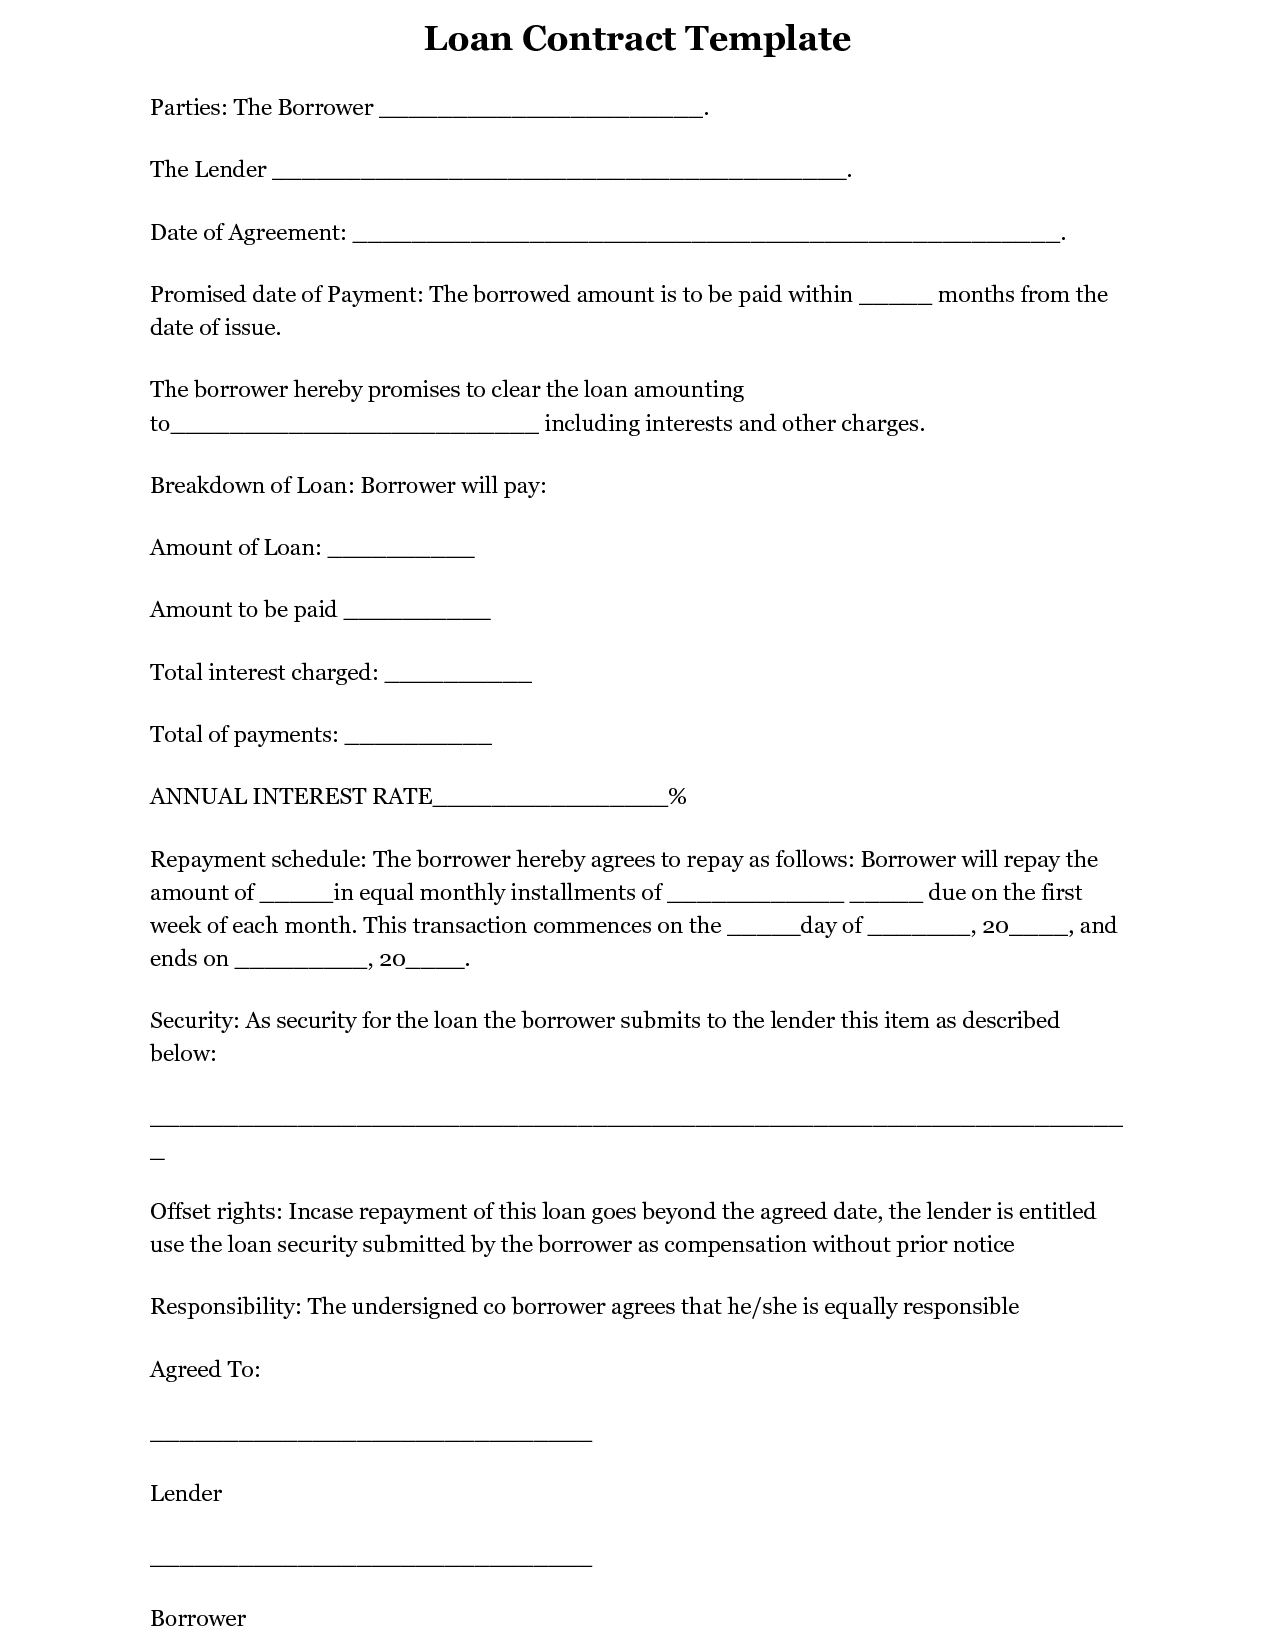 simple interest loan agreement template – Template Loan Agreement Free